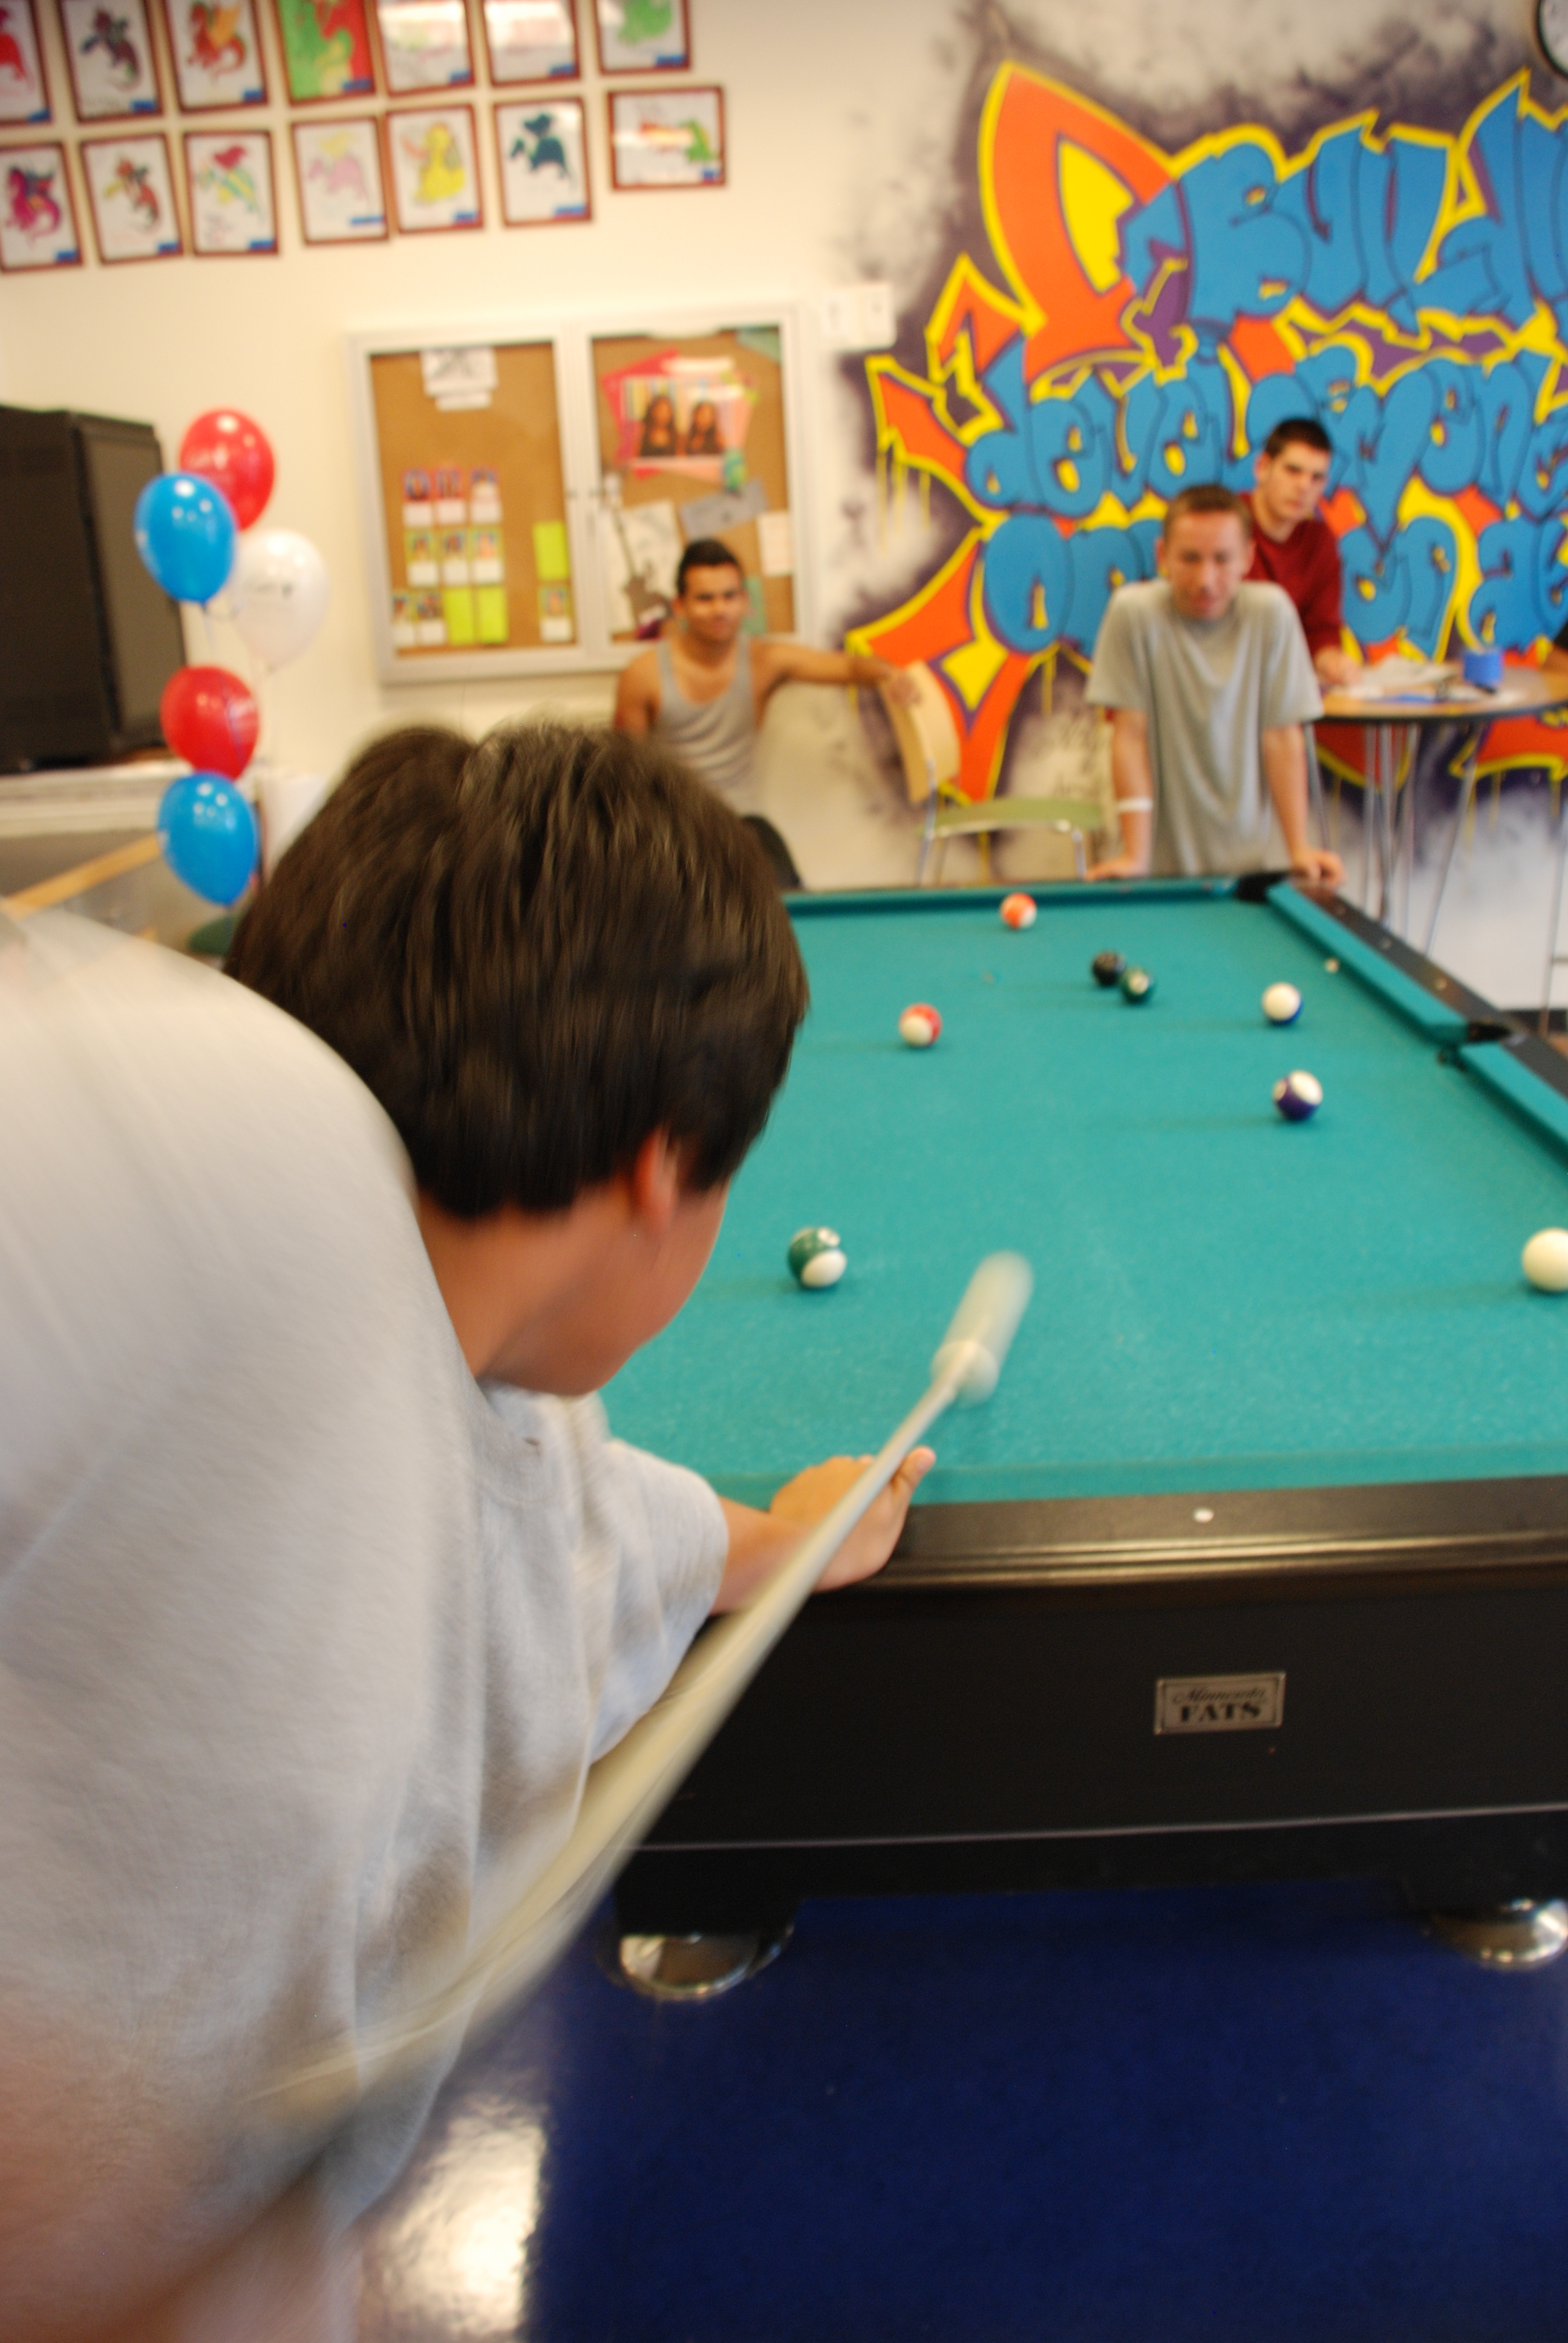 Teens Enjoying Pool Game